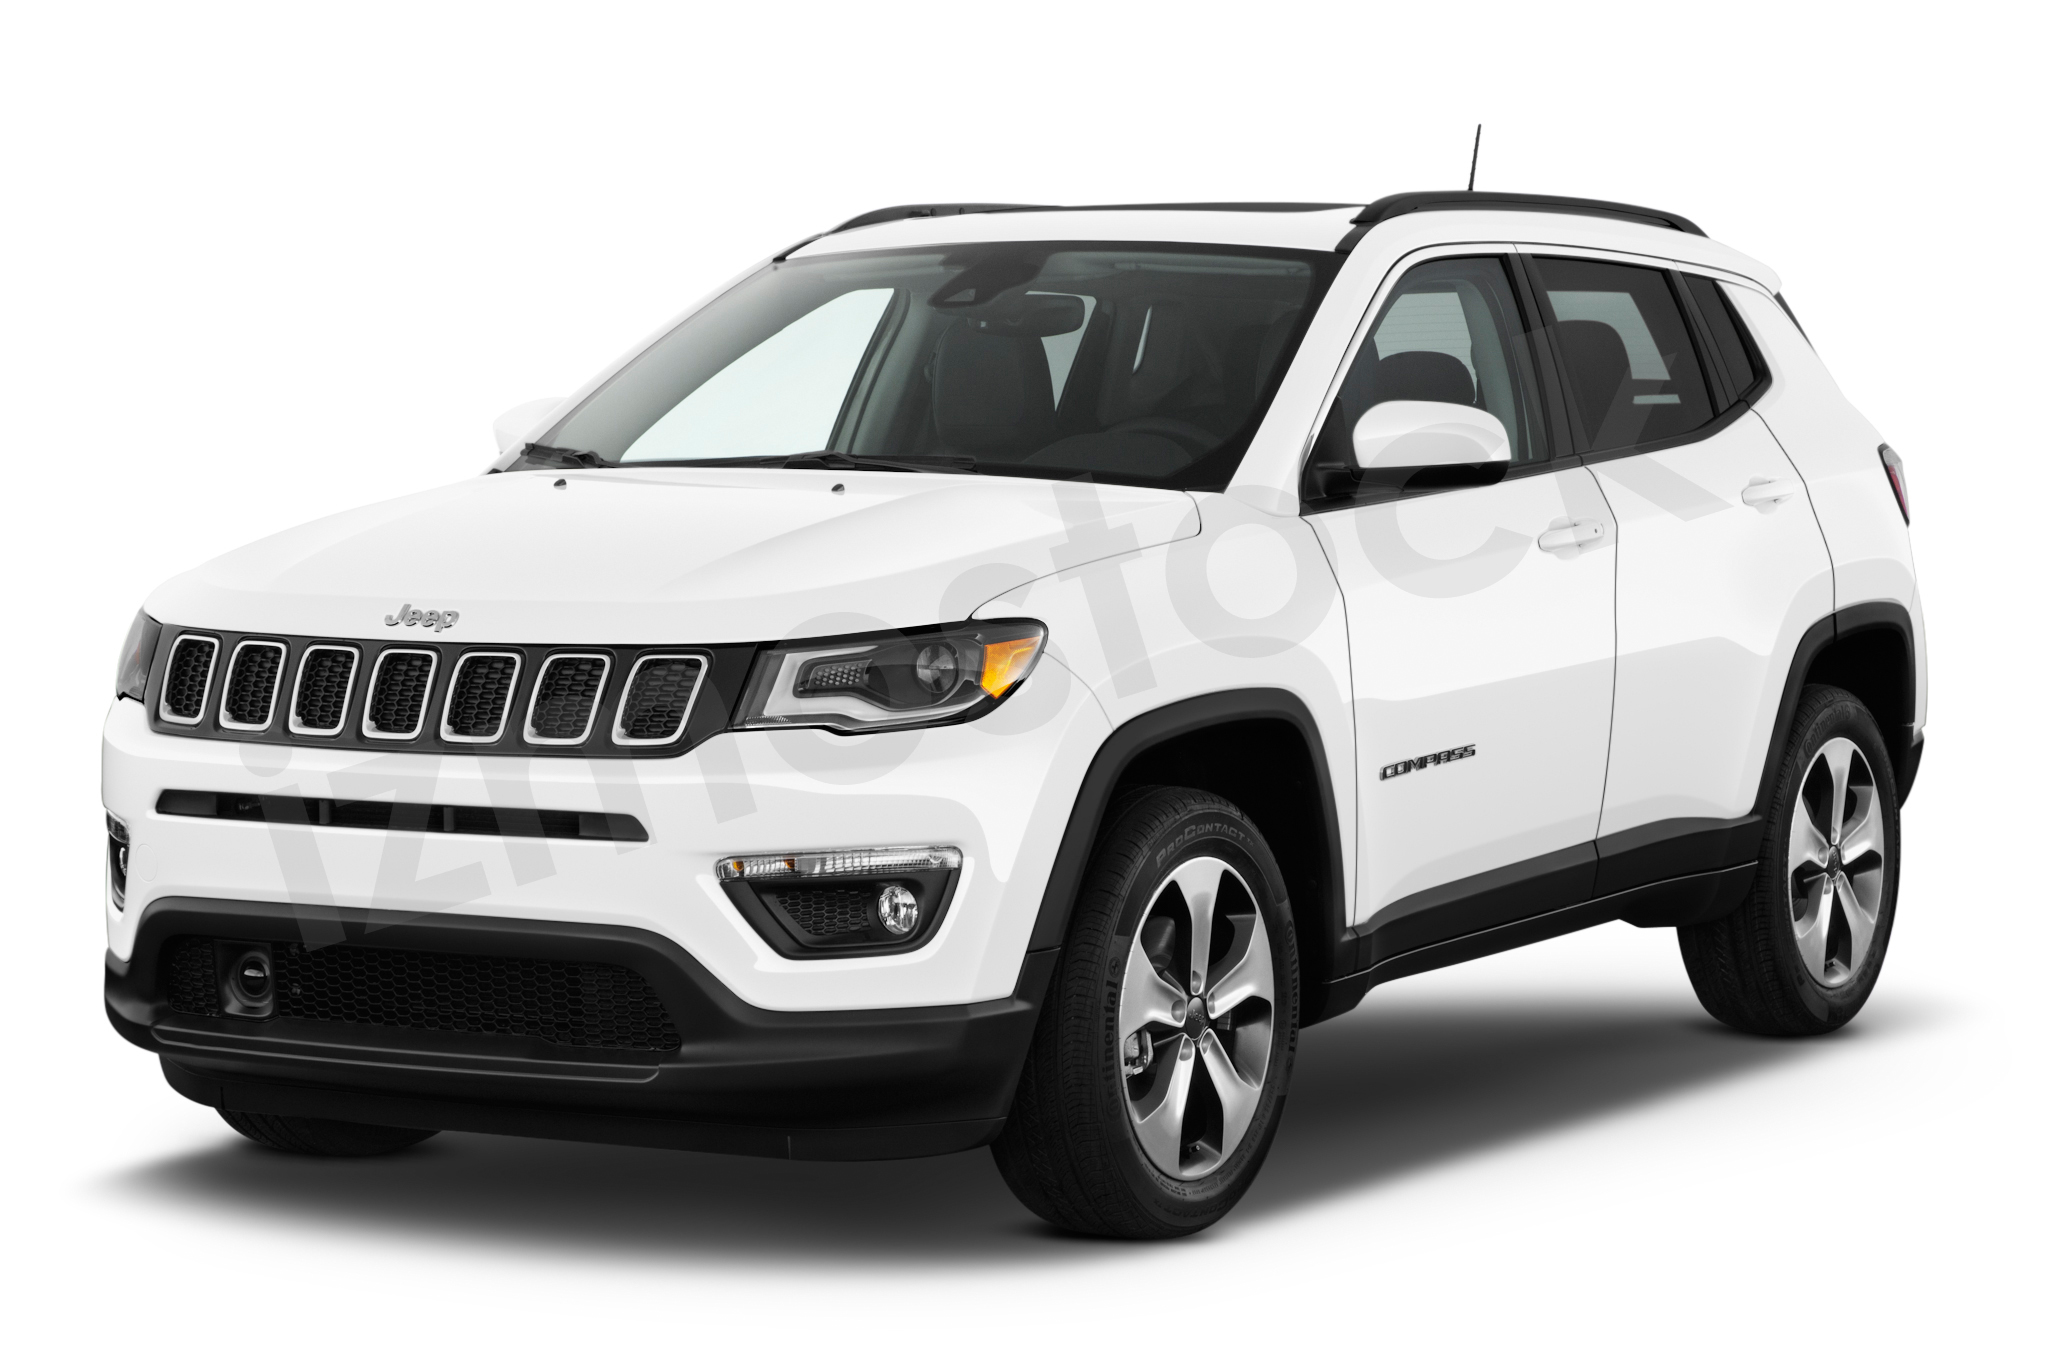 jeep compass 2017 review photos price interior video and specs. Black Bedroom Furniture Sets. Home Design Ideas